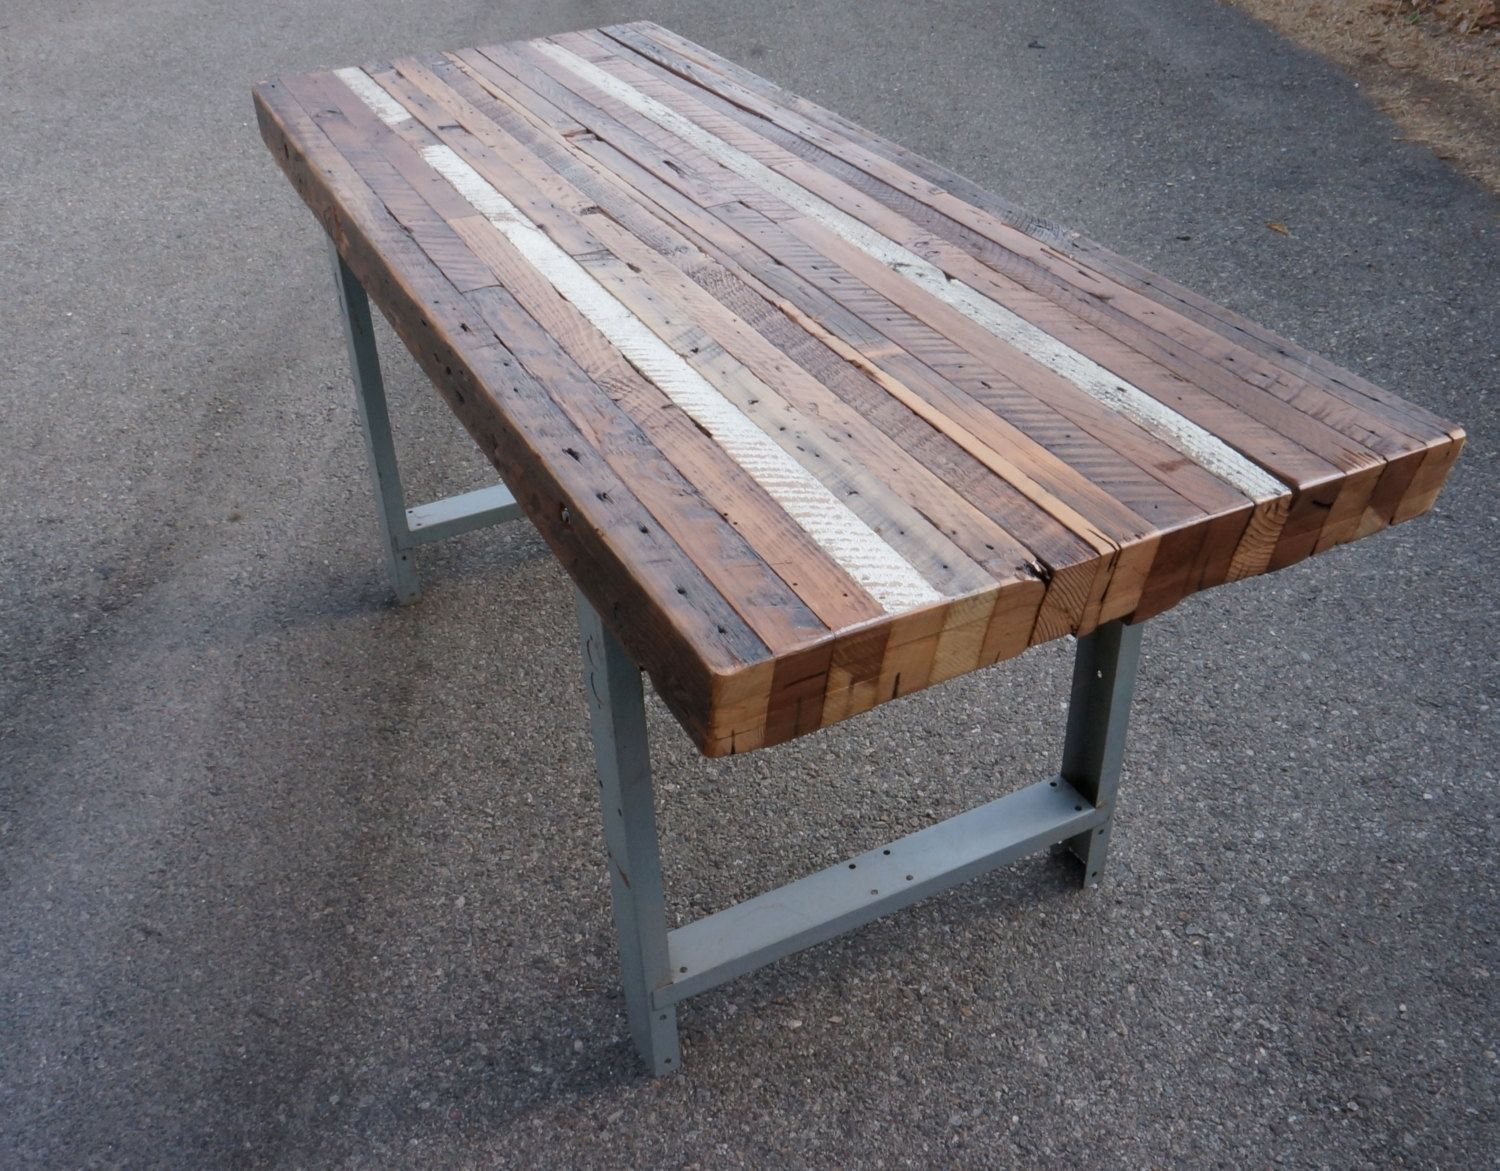 Indoor Rustic Industrial Reclaimed Wood Dining Table Coffee Table